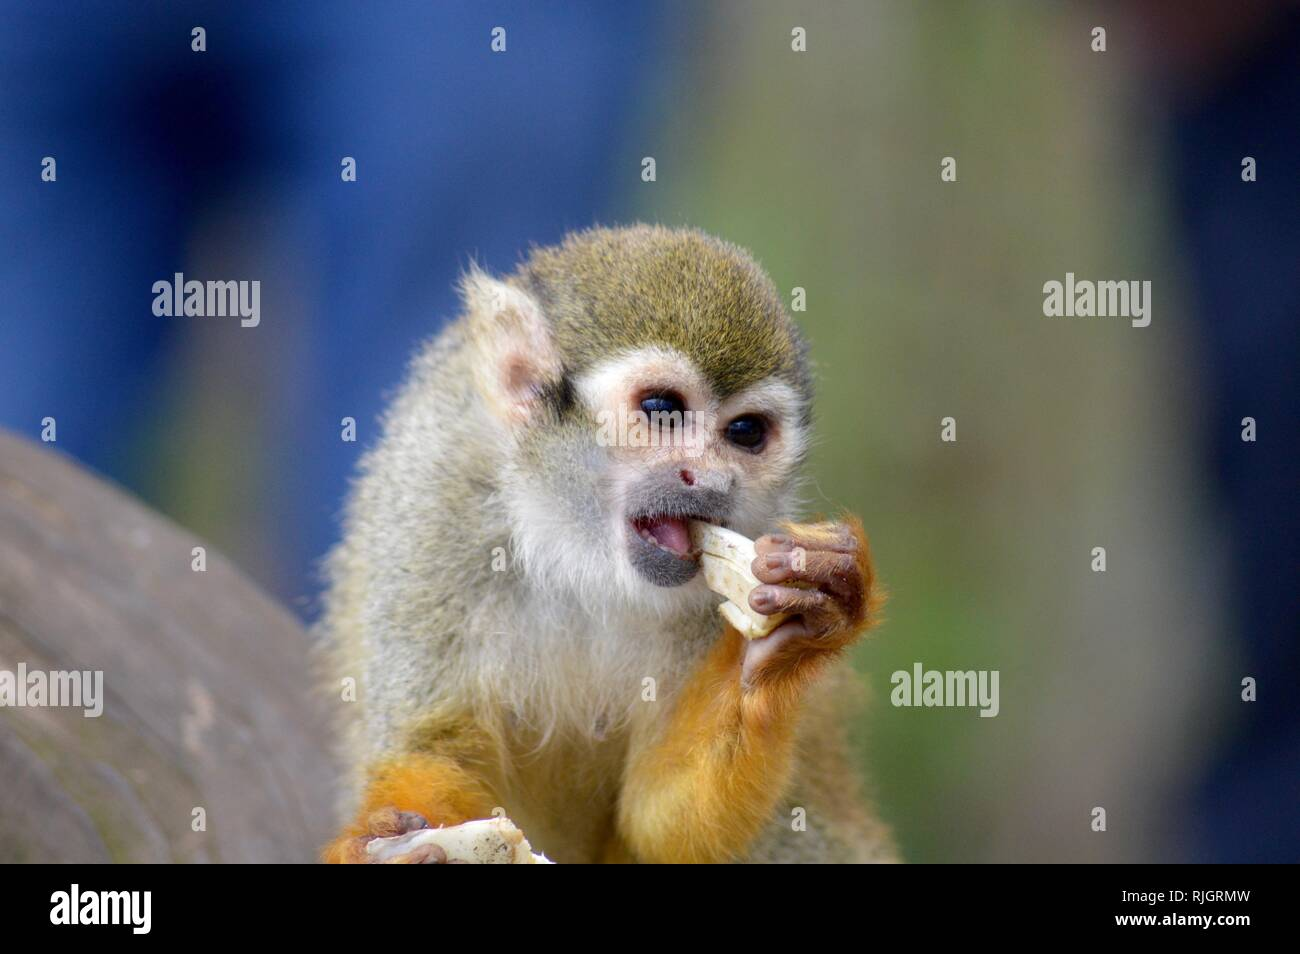 Squirrel monkey having a snack - Stock Image